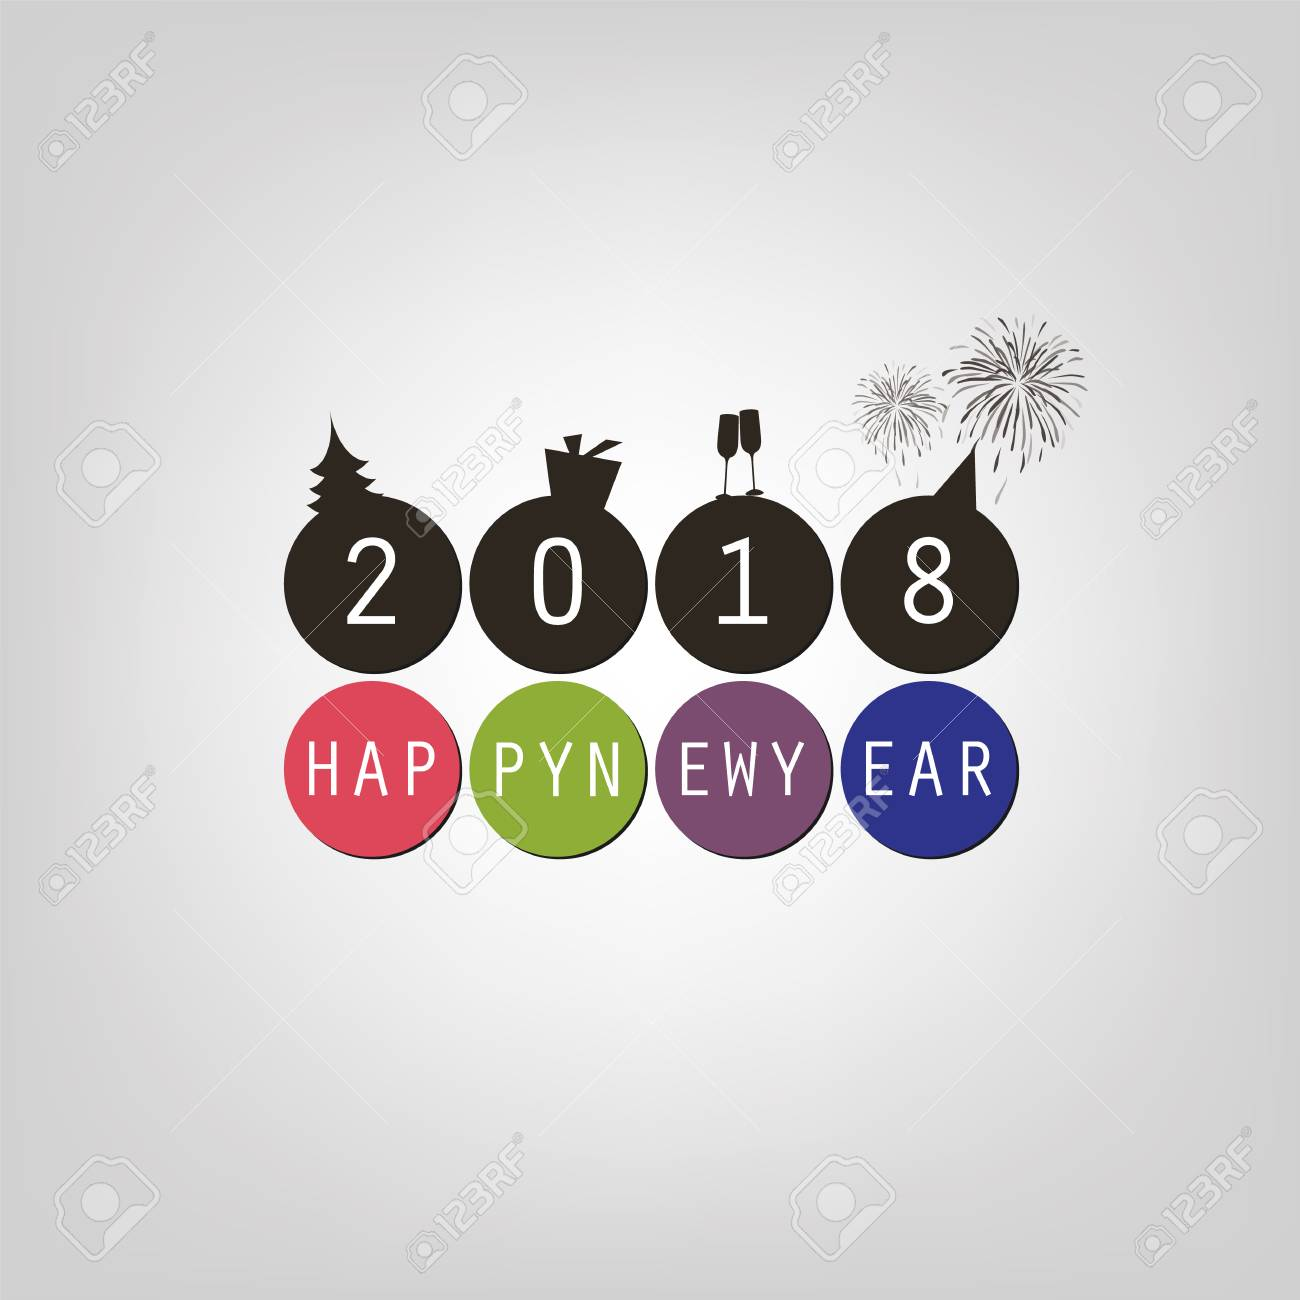 best wishes simple happy new year card or cover design template 2018 stock vector